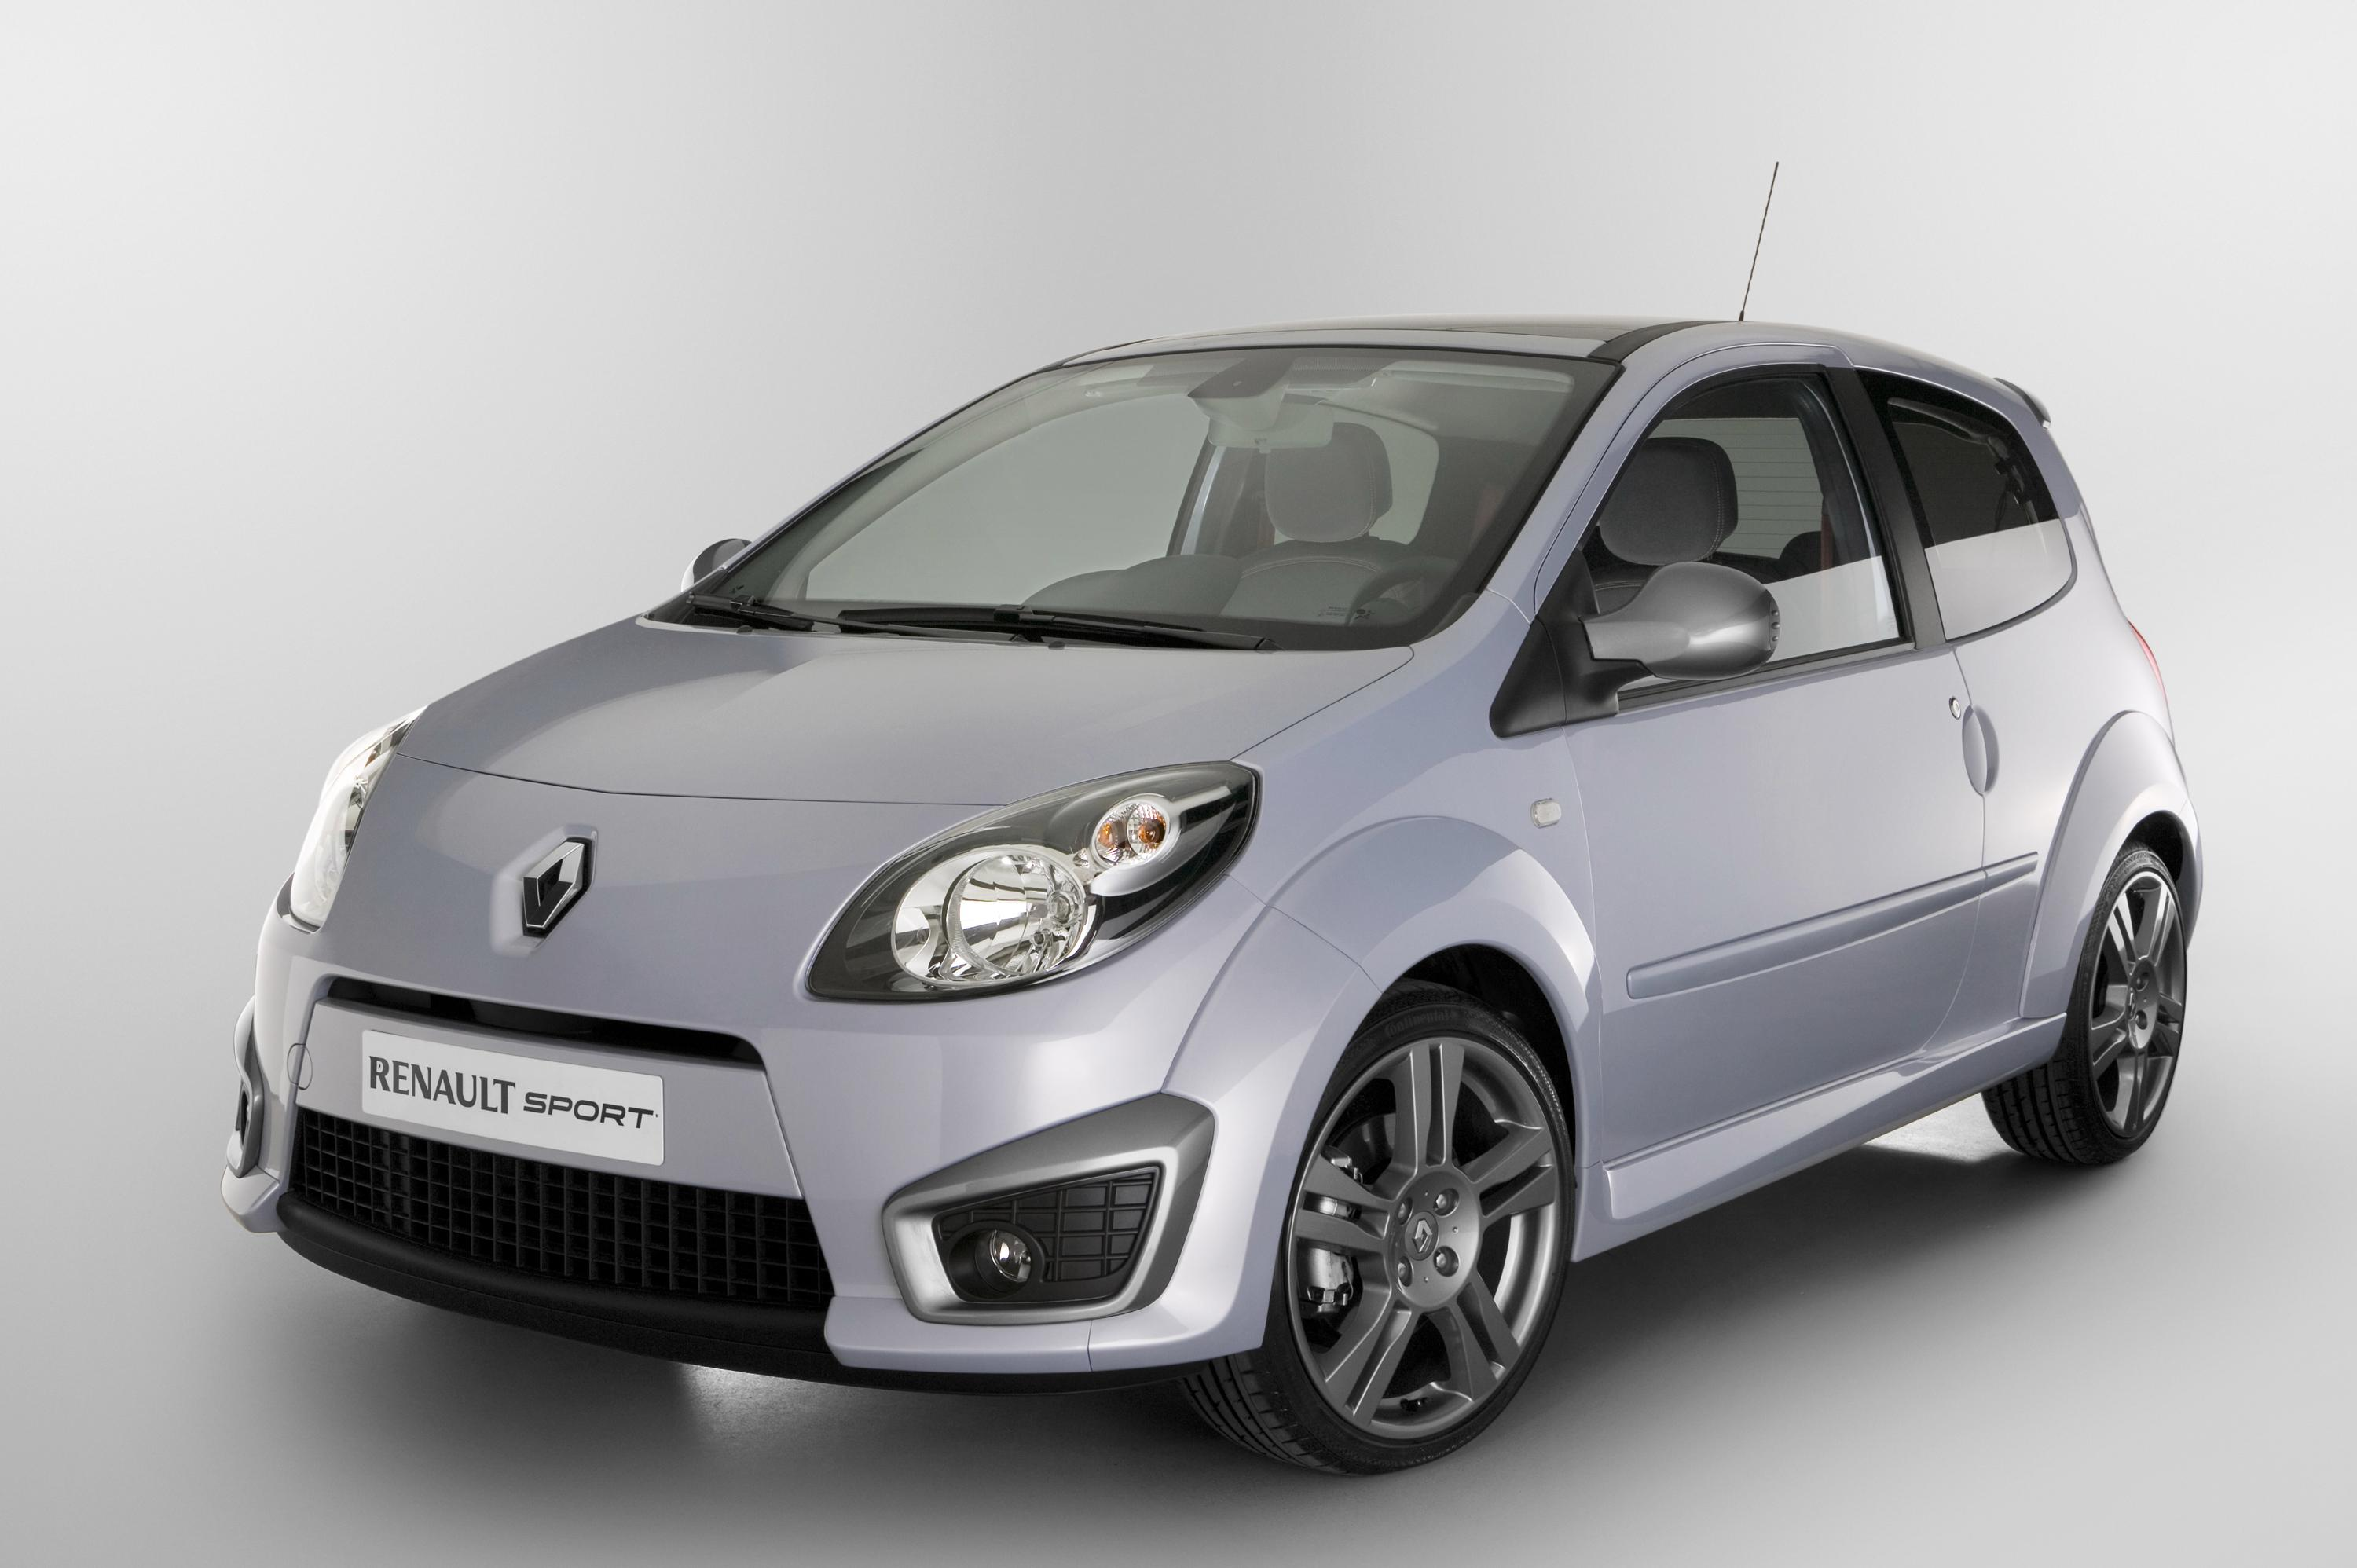 twingo renault sport entry level access to the renault sport thrill with complete control. Black Bedroom Furniture Sets. Home Design Ideas